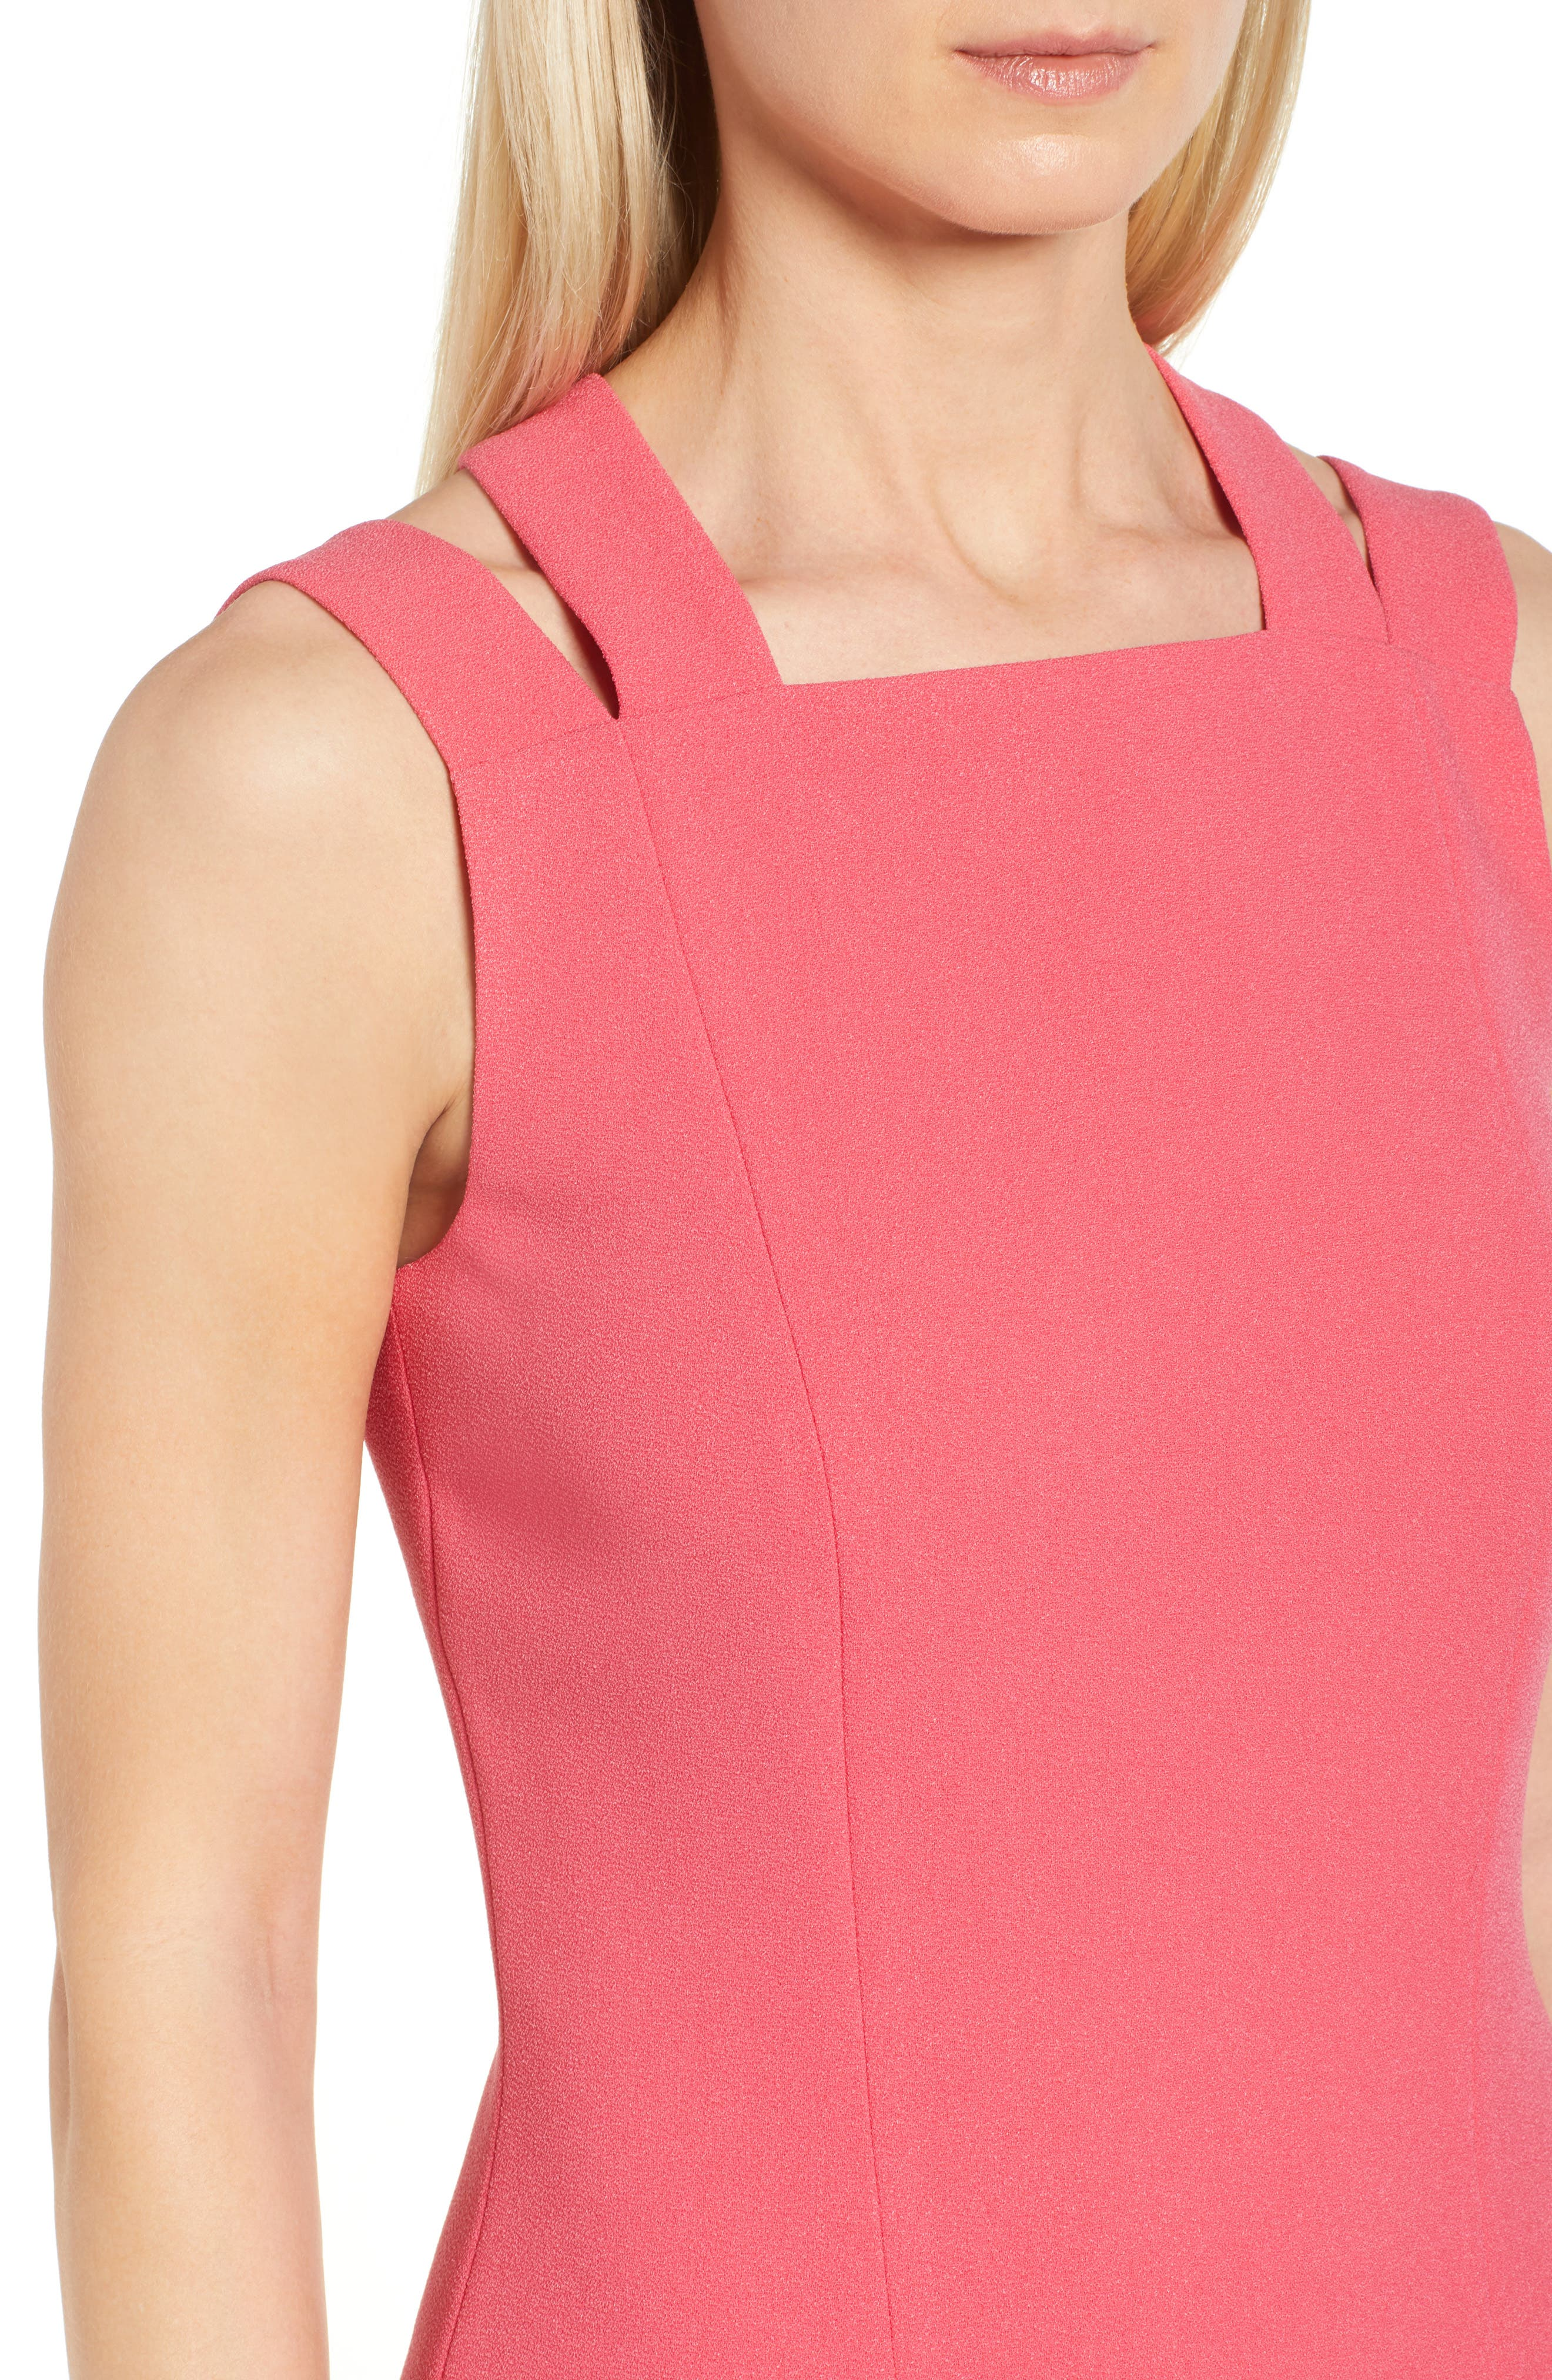 Daphima Compact Crepe Sheath Dress,                             Alternate thumbnail 4, color,                             Lychee Pink